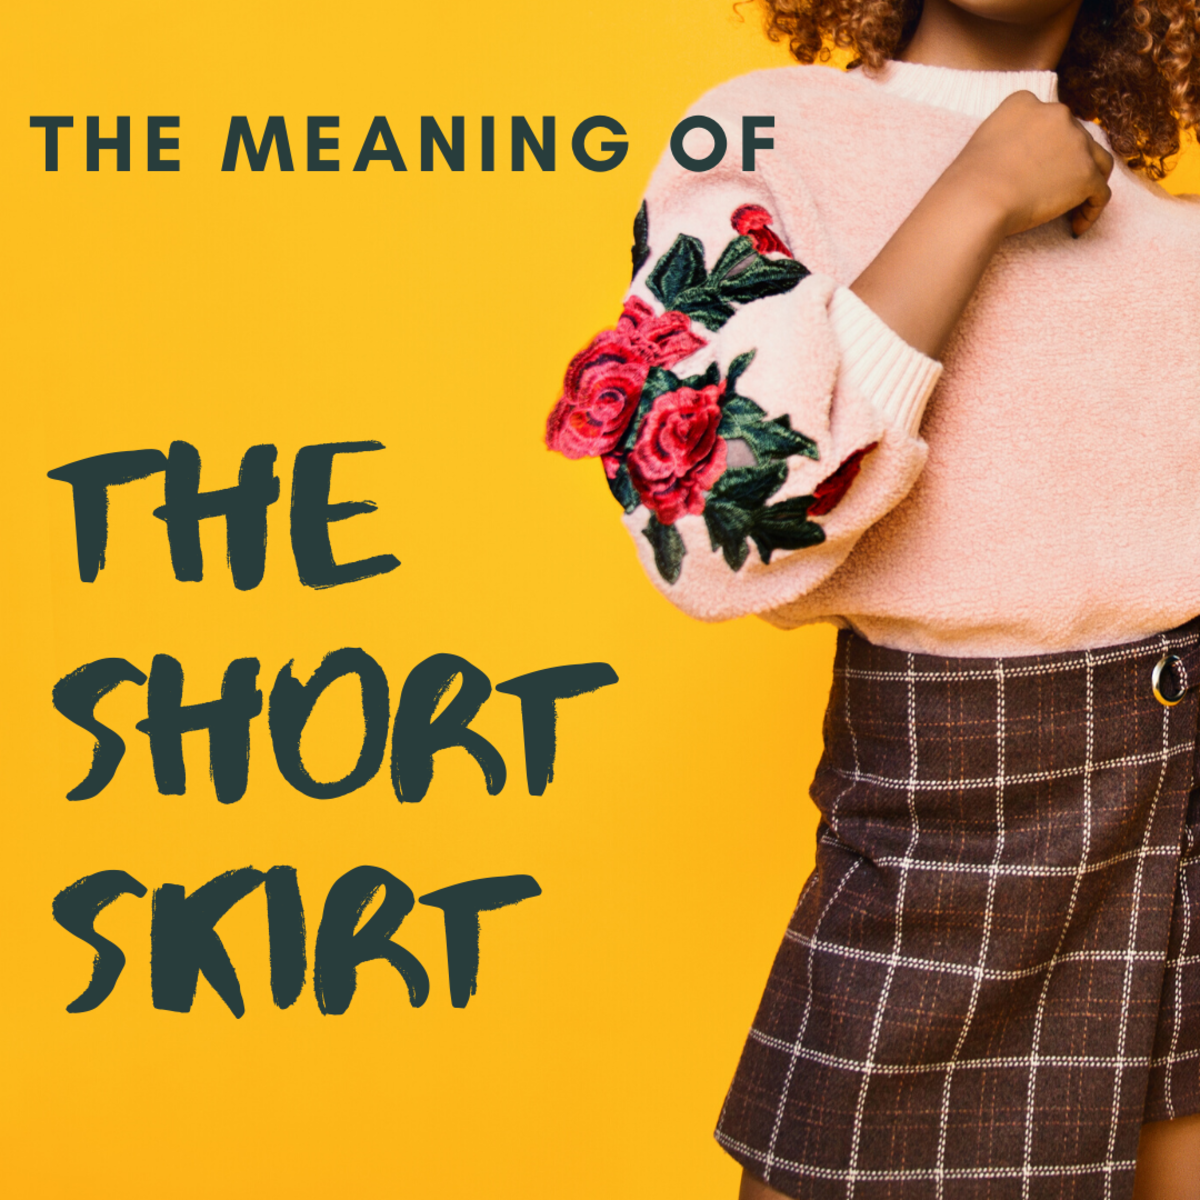 The Meaning of the Short Skirt and Why You Might Want to Rethink Your Opinion